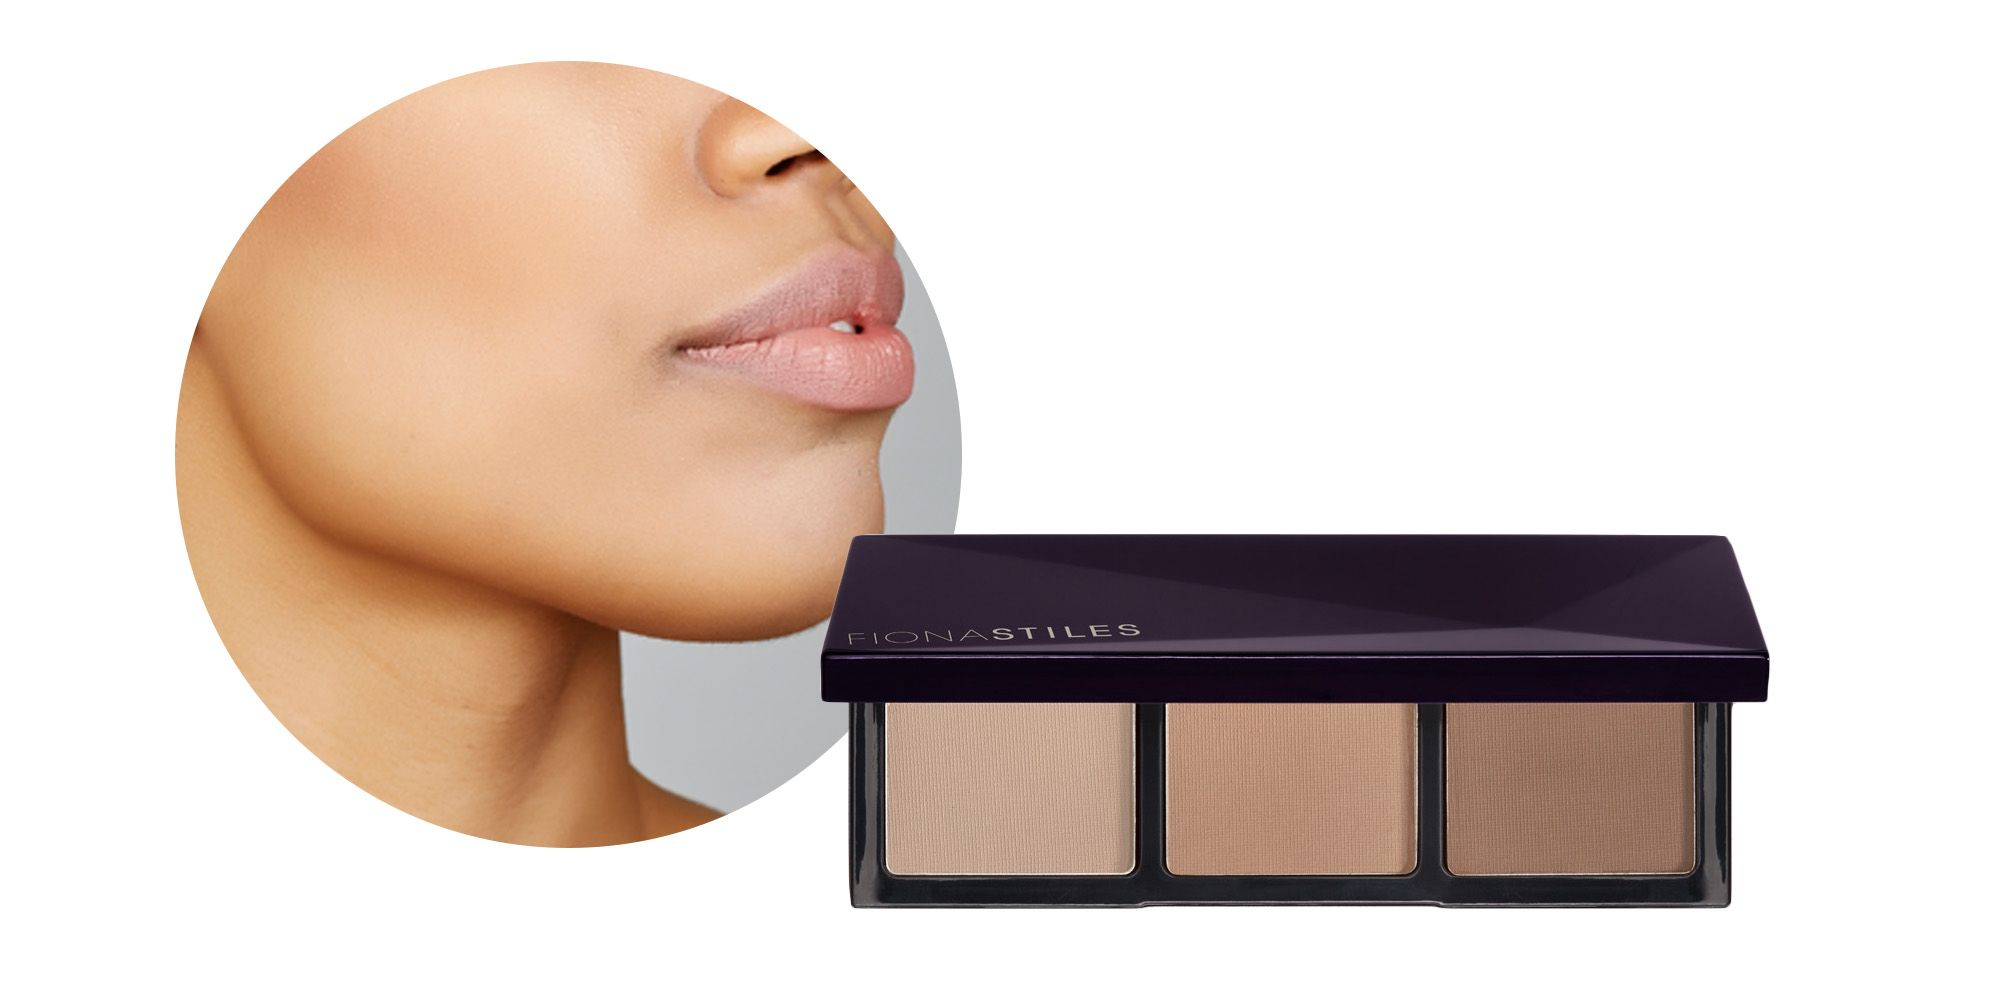 "<p>For warm, deeper skin tones, Sir John&nbsp&#x3B;uses contour shades with gray undertones to increase the depth of the contour. ""A cool matte recedes for that sculpted, hallowed effect,"" he says.</p><p>Try: Fiona Stiles Sheer Sculpting Palette, $28&#x3B; <a href=""http://bit.ly/2kxKKfN"" target=""_blank"" data-tracking-id=""recirc-text-link"">ulta.com</a>.&nbsp&#x3B;<span class=""redactor-invisible-space"" data-verified=""redactor"" data-redactor-tag=""span"" data-redactor-class=""redactor-invisible-space""></span></p>"